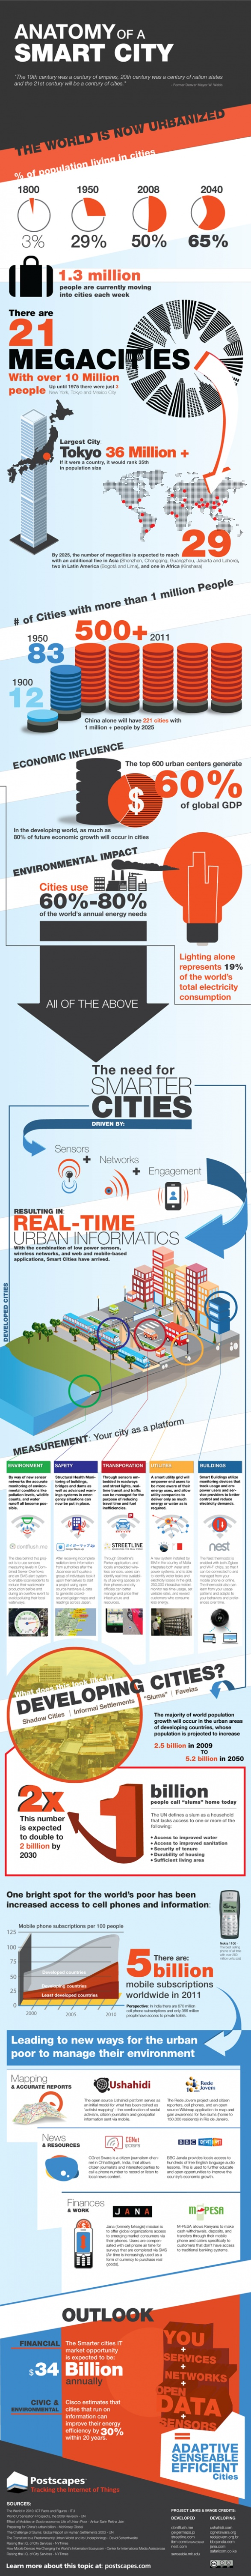 The anatomy of a #smartcity . . . what will the future really look like?